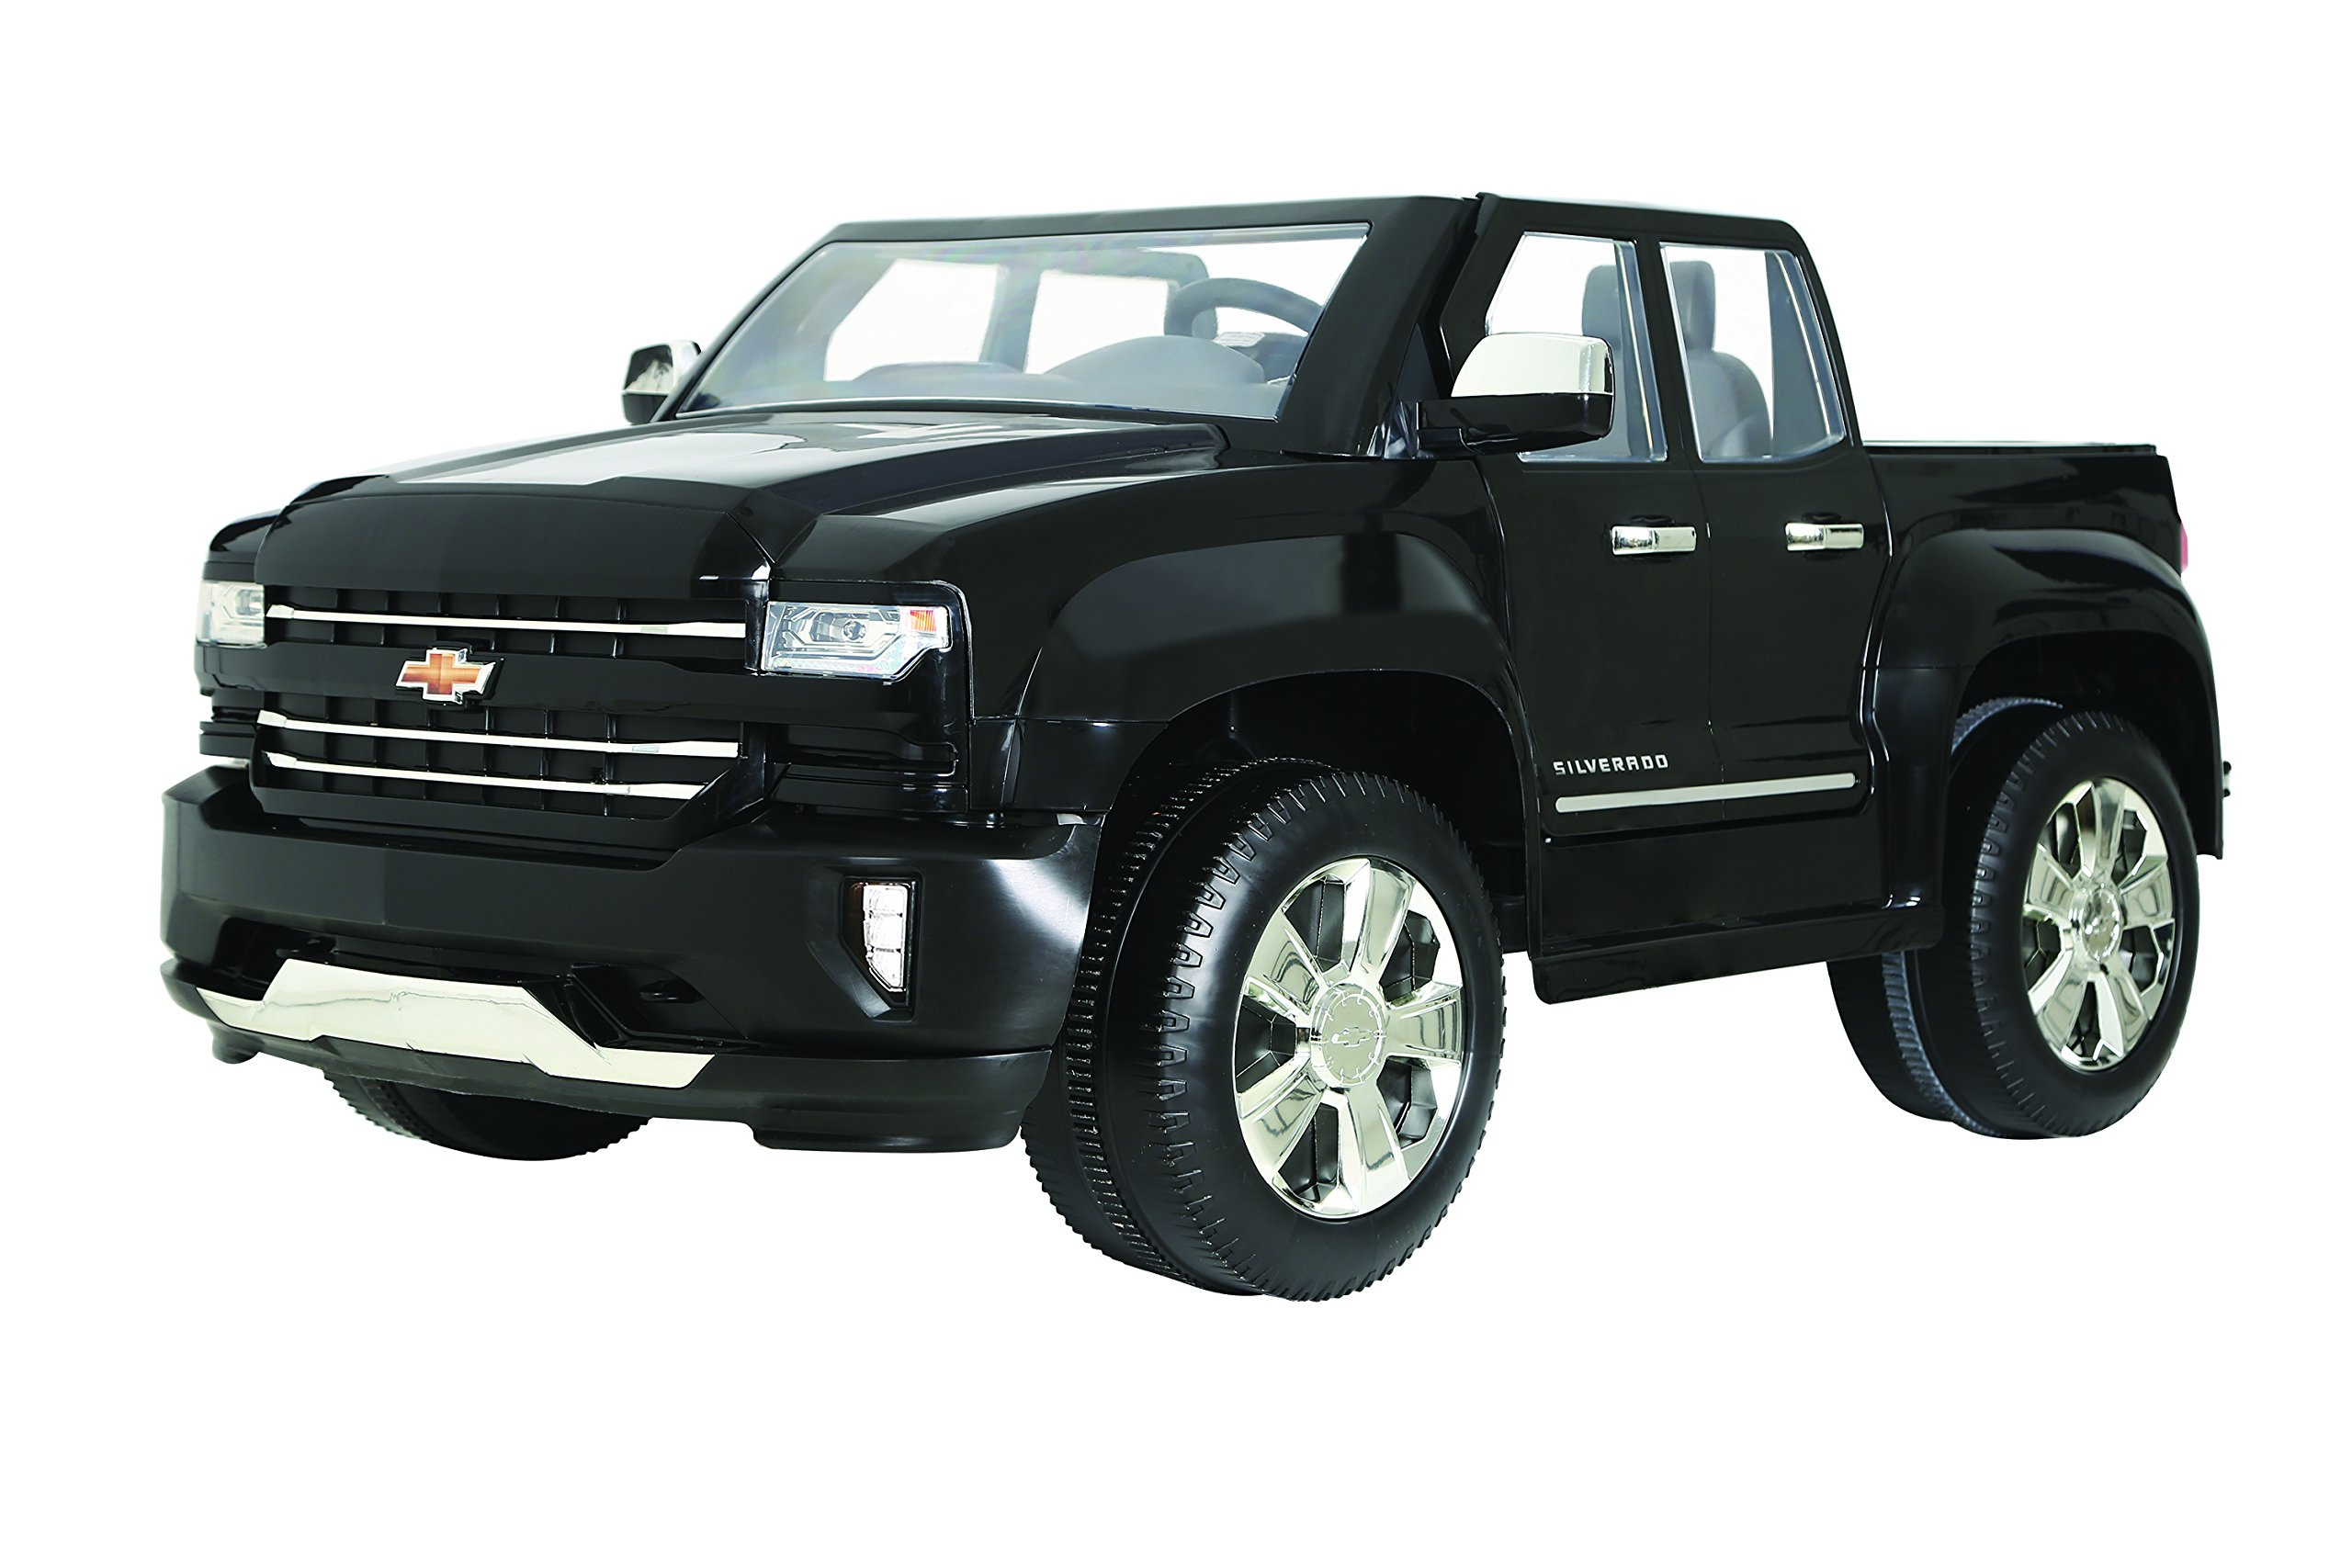 Rollplay Chevy Silverado 12 Volt Battery Ride-on with New Grille, Black by Rollplay